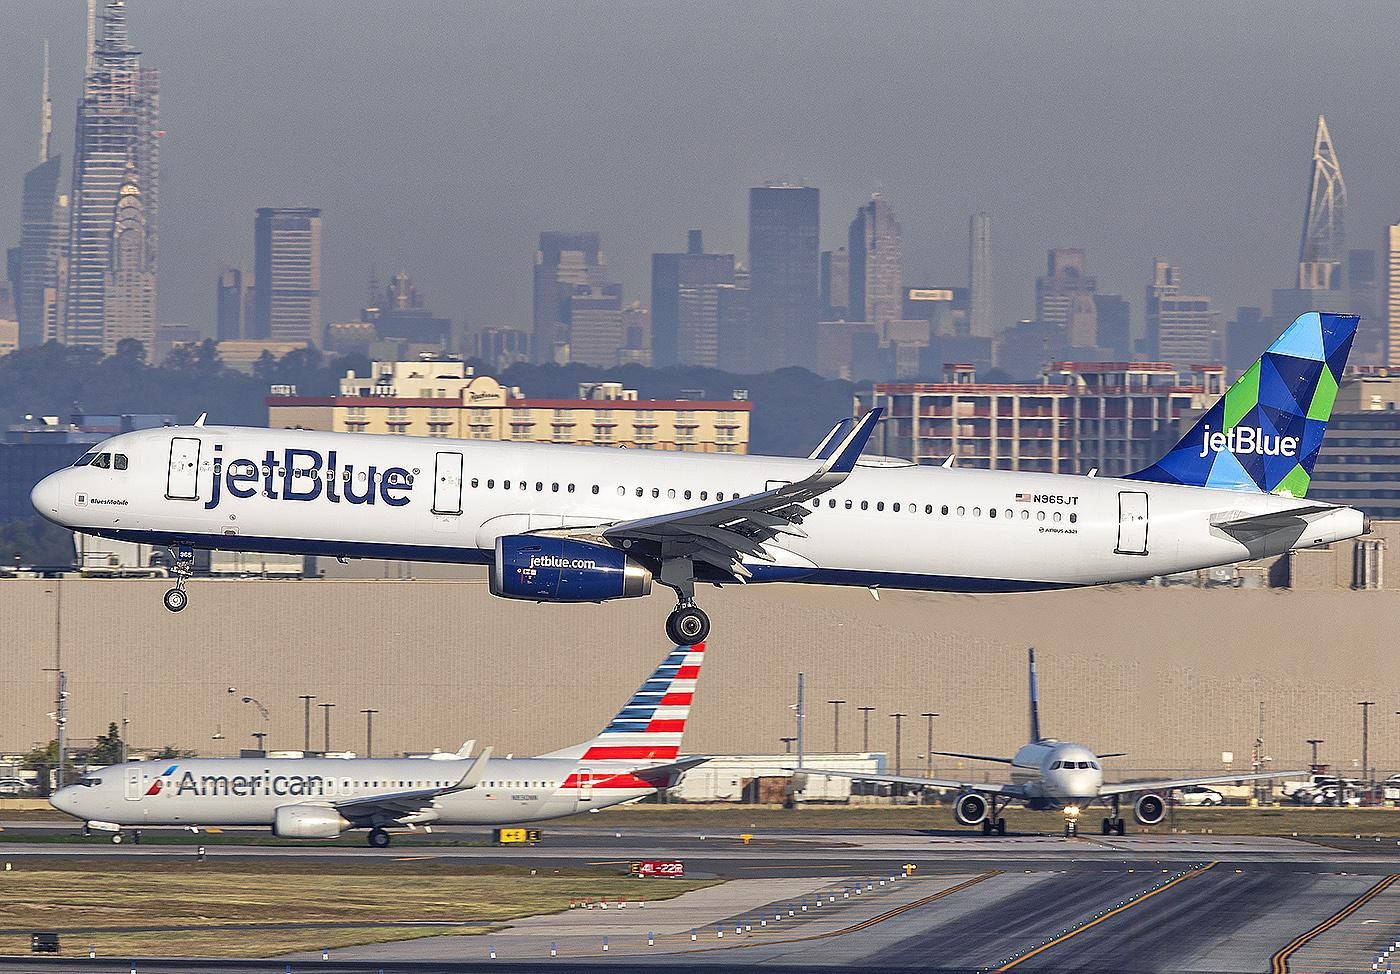 JetBlue and American Airlines